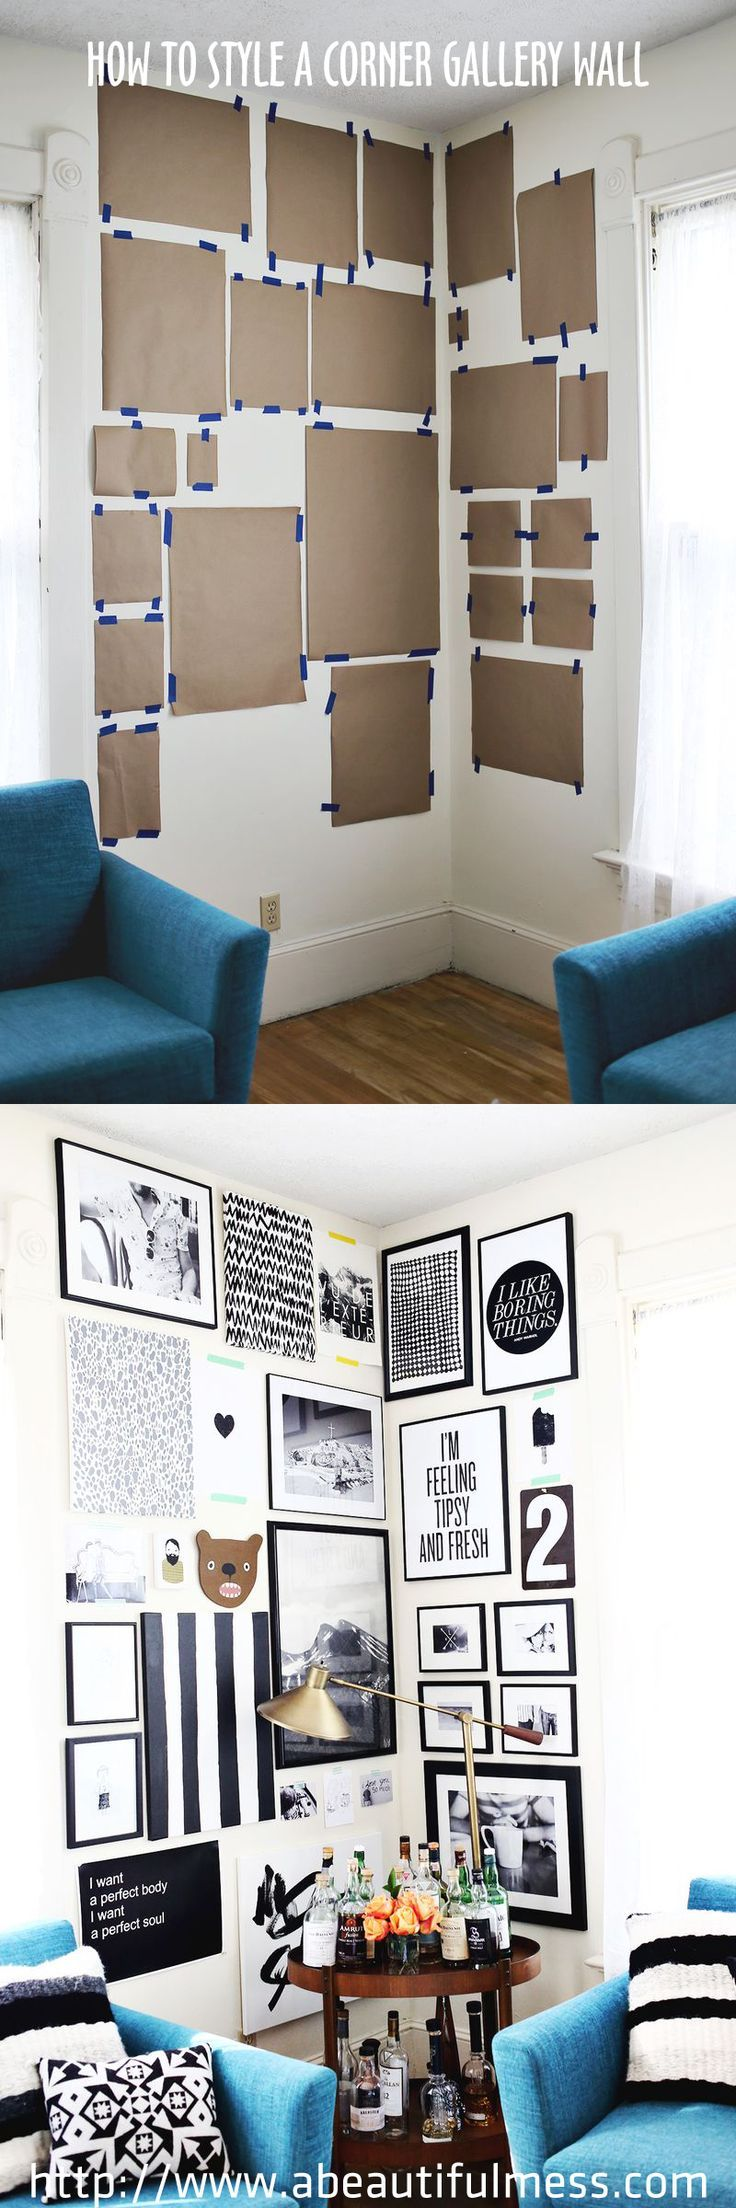 How to style a gallery wall colocar con vuadrod pinterest